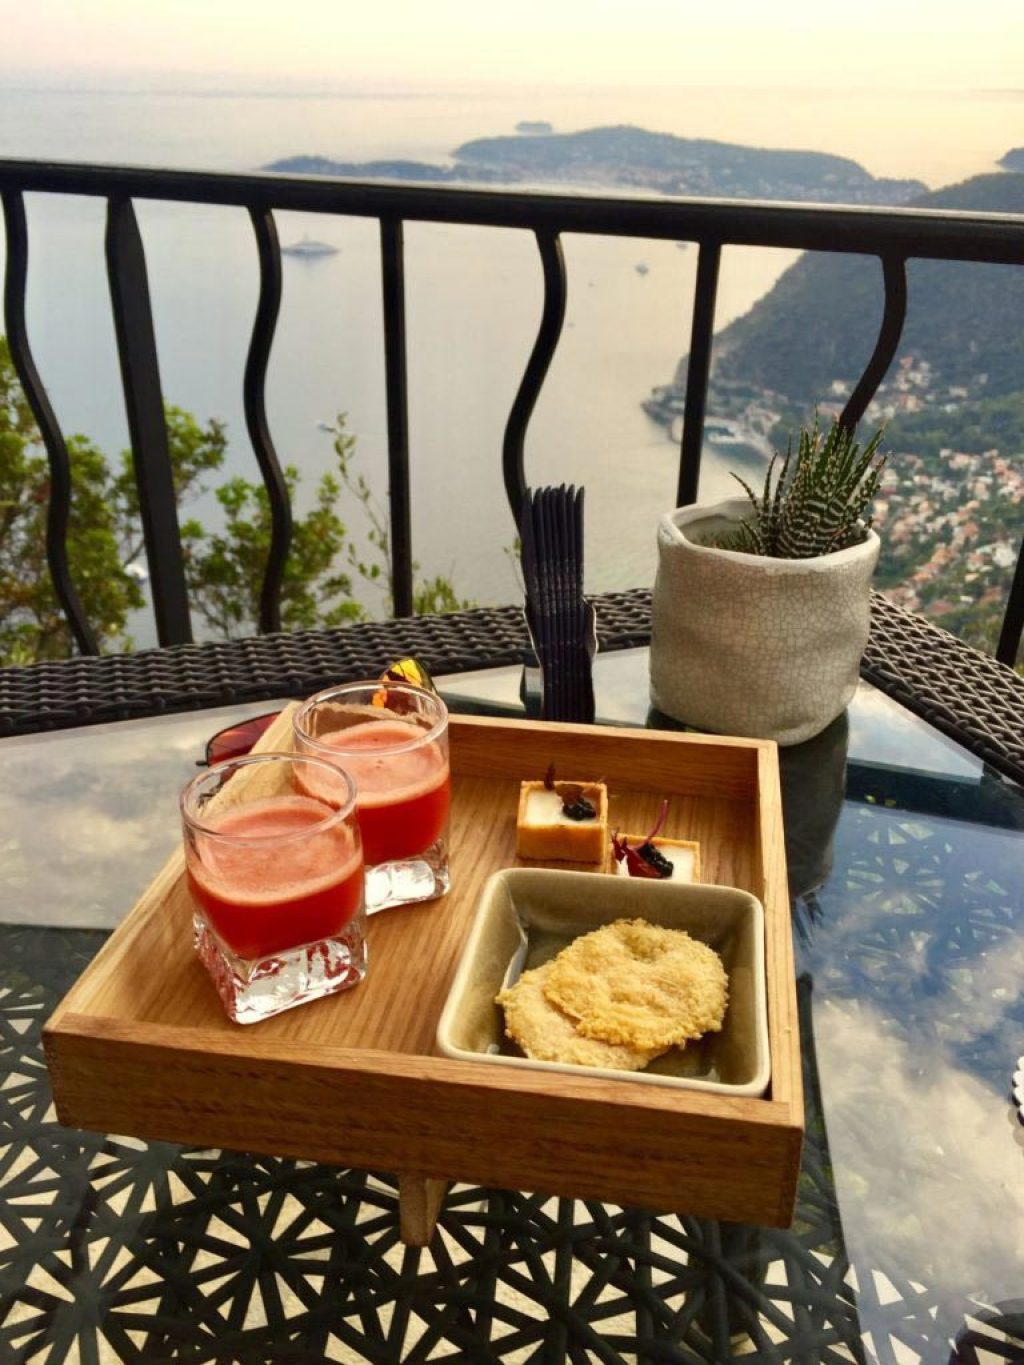 Amuse bouche at Chateau Eza in Eze, looking down on the Mediterranean and Cap Ferrat.